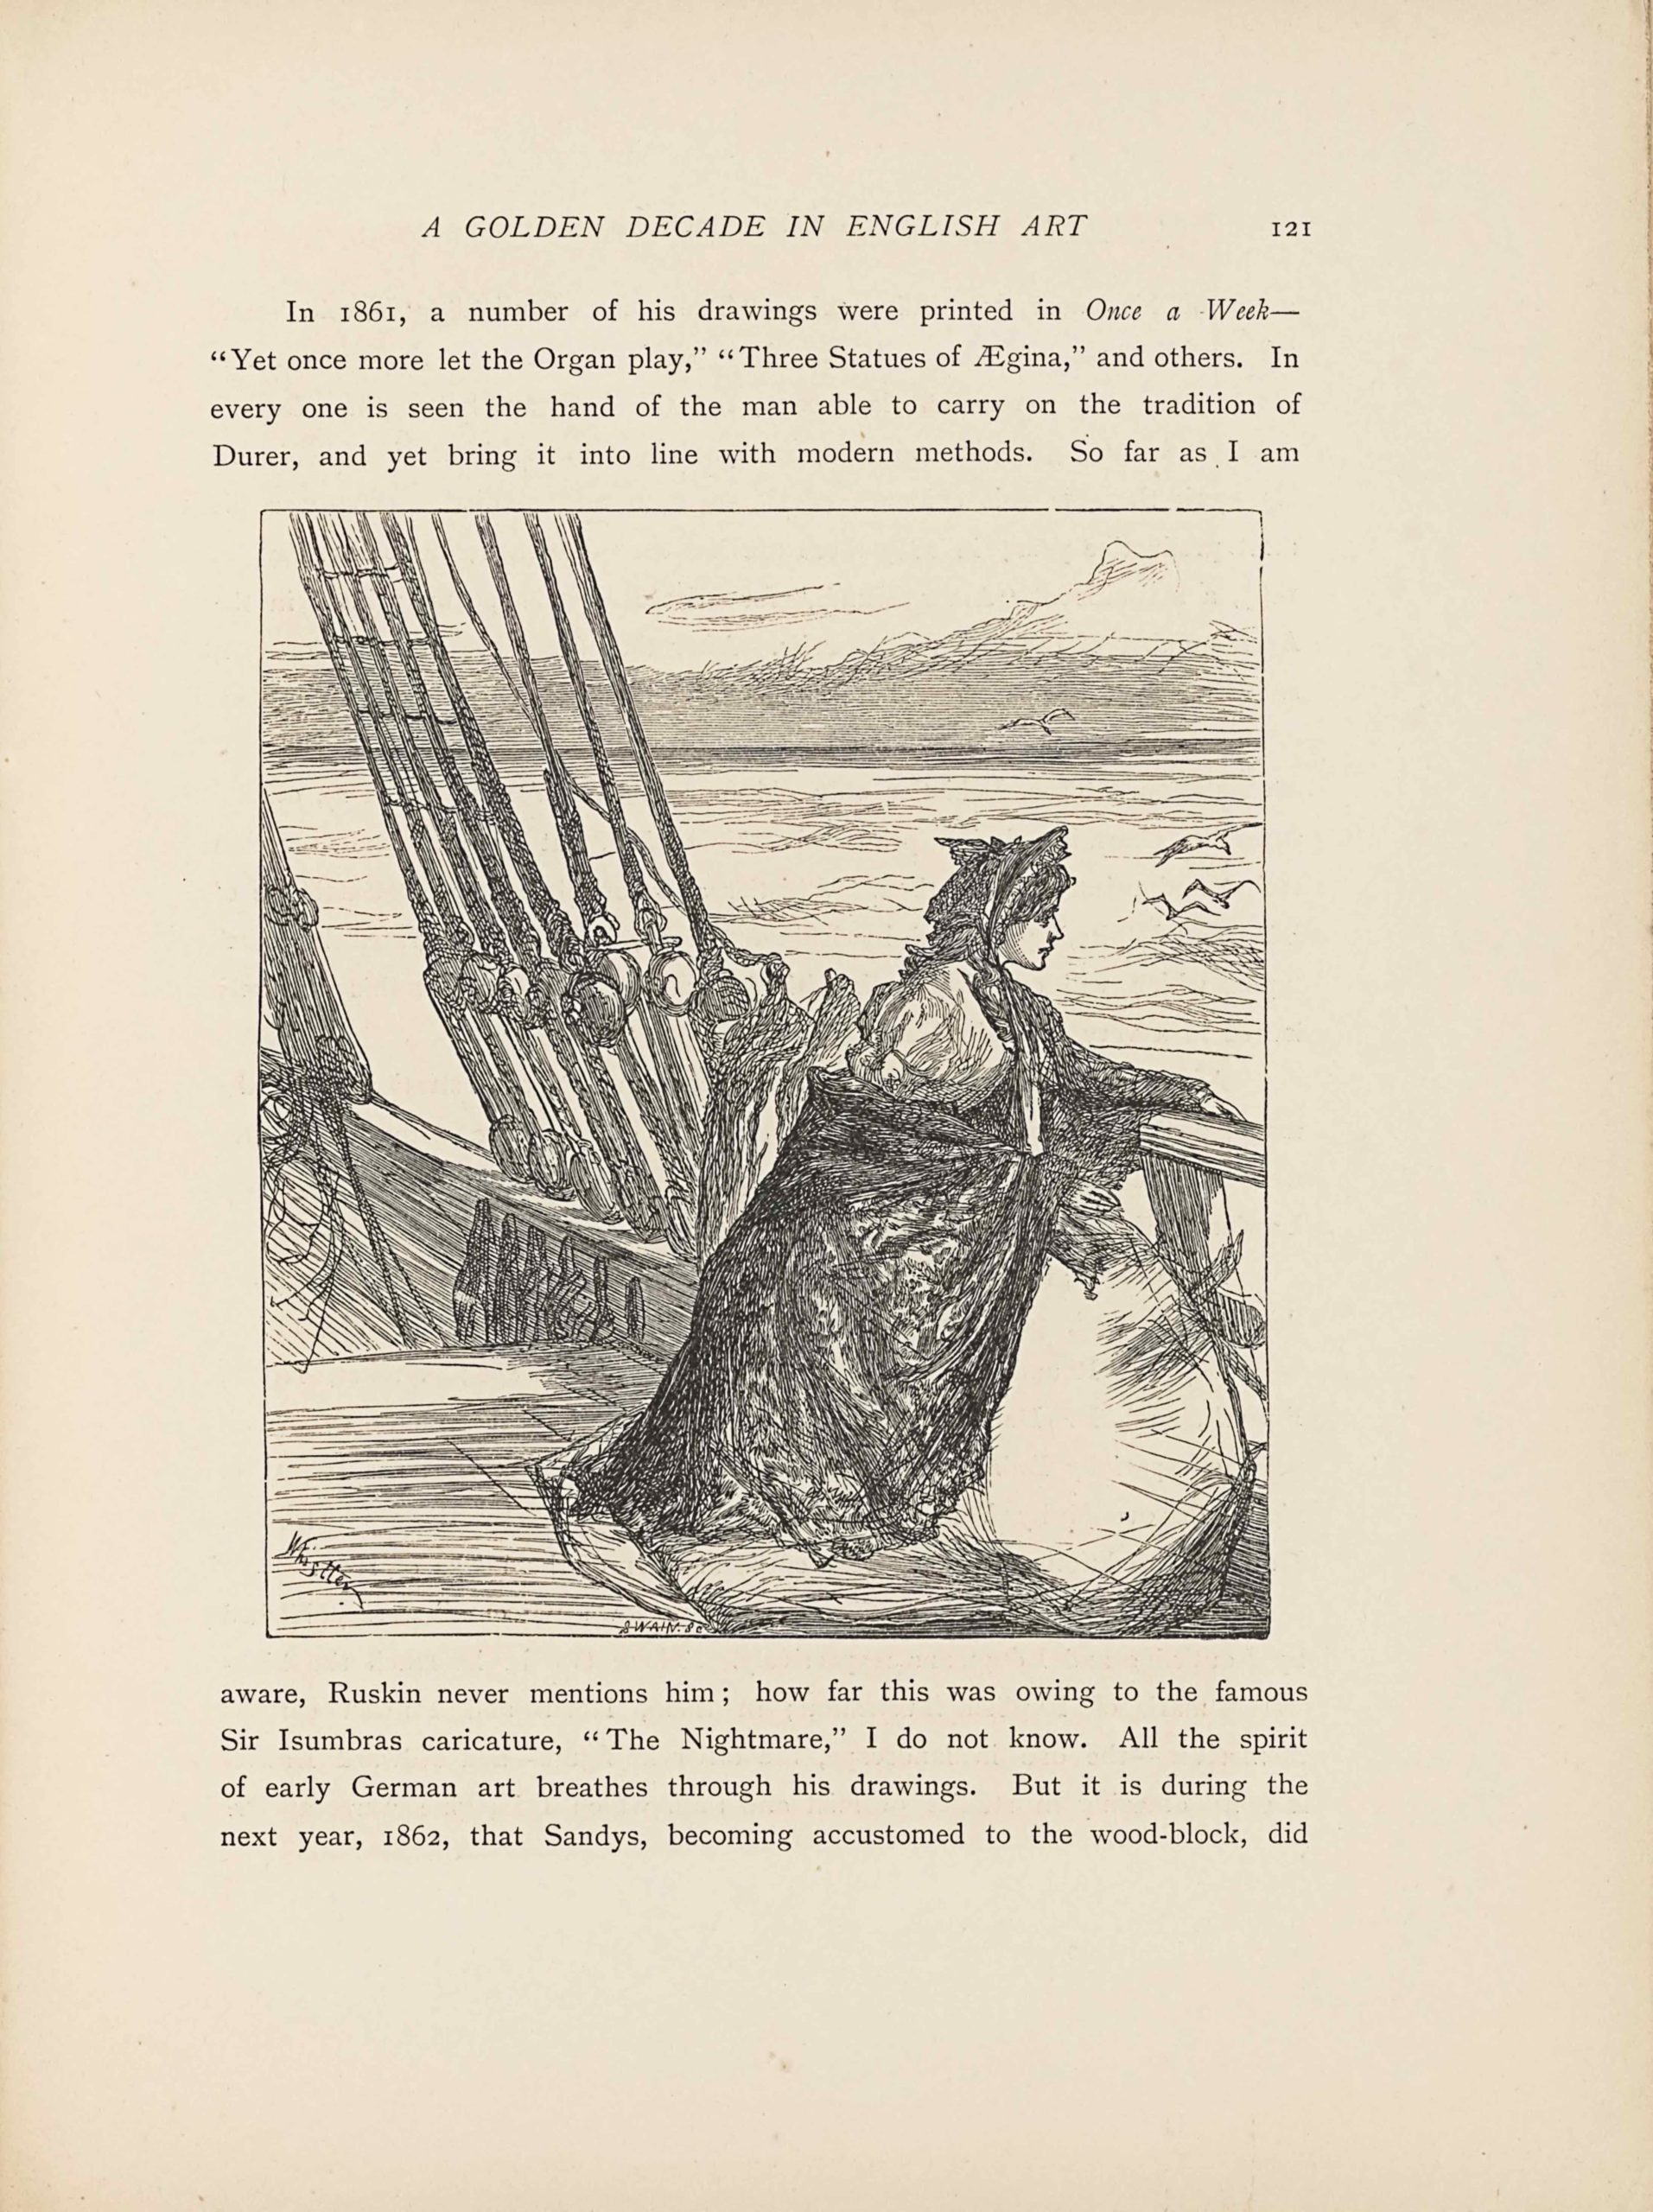 "This line-block reproduction of a wood-engraved image is in portrait orientation. The image shows a woman seated on the deck of a ship in the water, with land in the distant horizon. The woman fills about the bottom right quadrant of the page. She sits facing the right side of the page, showing the profile of her face looking out to sea over the hull. She is wearing a large, light-coloured gown that puffs out into a big skirt. She has a dark shawl wrapped around her arms and the back of the skirt. One of her arms, the left, is leaning on the rail of the ship and the other is bent, holding up the shawl. She has on a bonnet that covers the back of her head and her bangs peek out from the front. The bonnet ties underneath her chin and the ties hang down the front of her dress. To the right of the woman's face in the background appear four seagulls flying above the water and towards the skyline. The deck extends behind her. The railing continues towards the left side of the page upwards and diagonally. The ropes that hold the ship's masts are tied off on the hooks that line the railing in the mid-ground and to the left of the woman. There are eight ropes that tie off, cutting vertically through the middle and left side of the page. The deck drops slightly lower after a few steps down and then continues out of sight towards the left. More ropes are shown attached to the distant railing but are mostly cut off from the frame on the left edge of the page. Behind the rail, ropes, and the woman is the watery background. The water rises to about three-quarters up the page, showing slight waves rising throughout. Behind the water the outline of a landscape appears lightly sketched to represent a body of land that has mountains and valleys. The sky has one sketched cloud and is above the land for a small portion of the page. The artist's name, ""Whistler,"" appears scrawled in the bottom left corner of the page diagonally aimed down to the right, and the engraver's signature, ""Swain,"" appears at centre bottom."